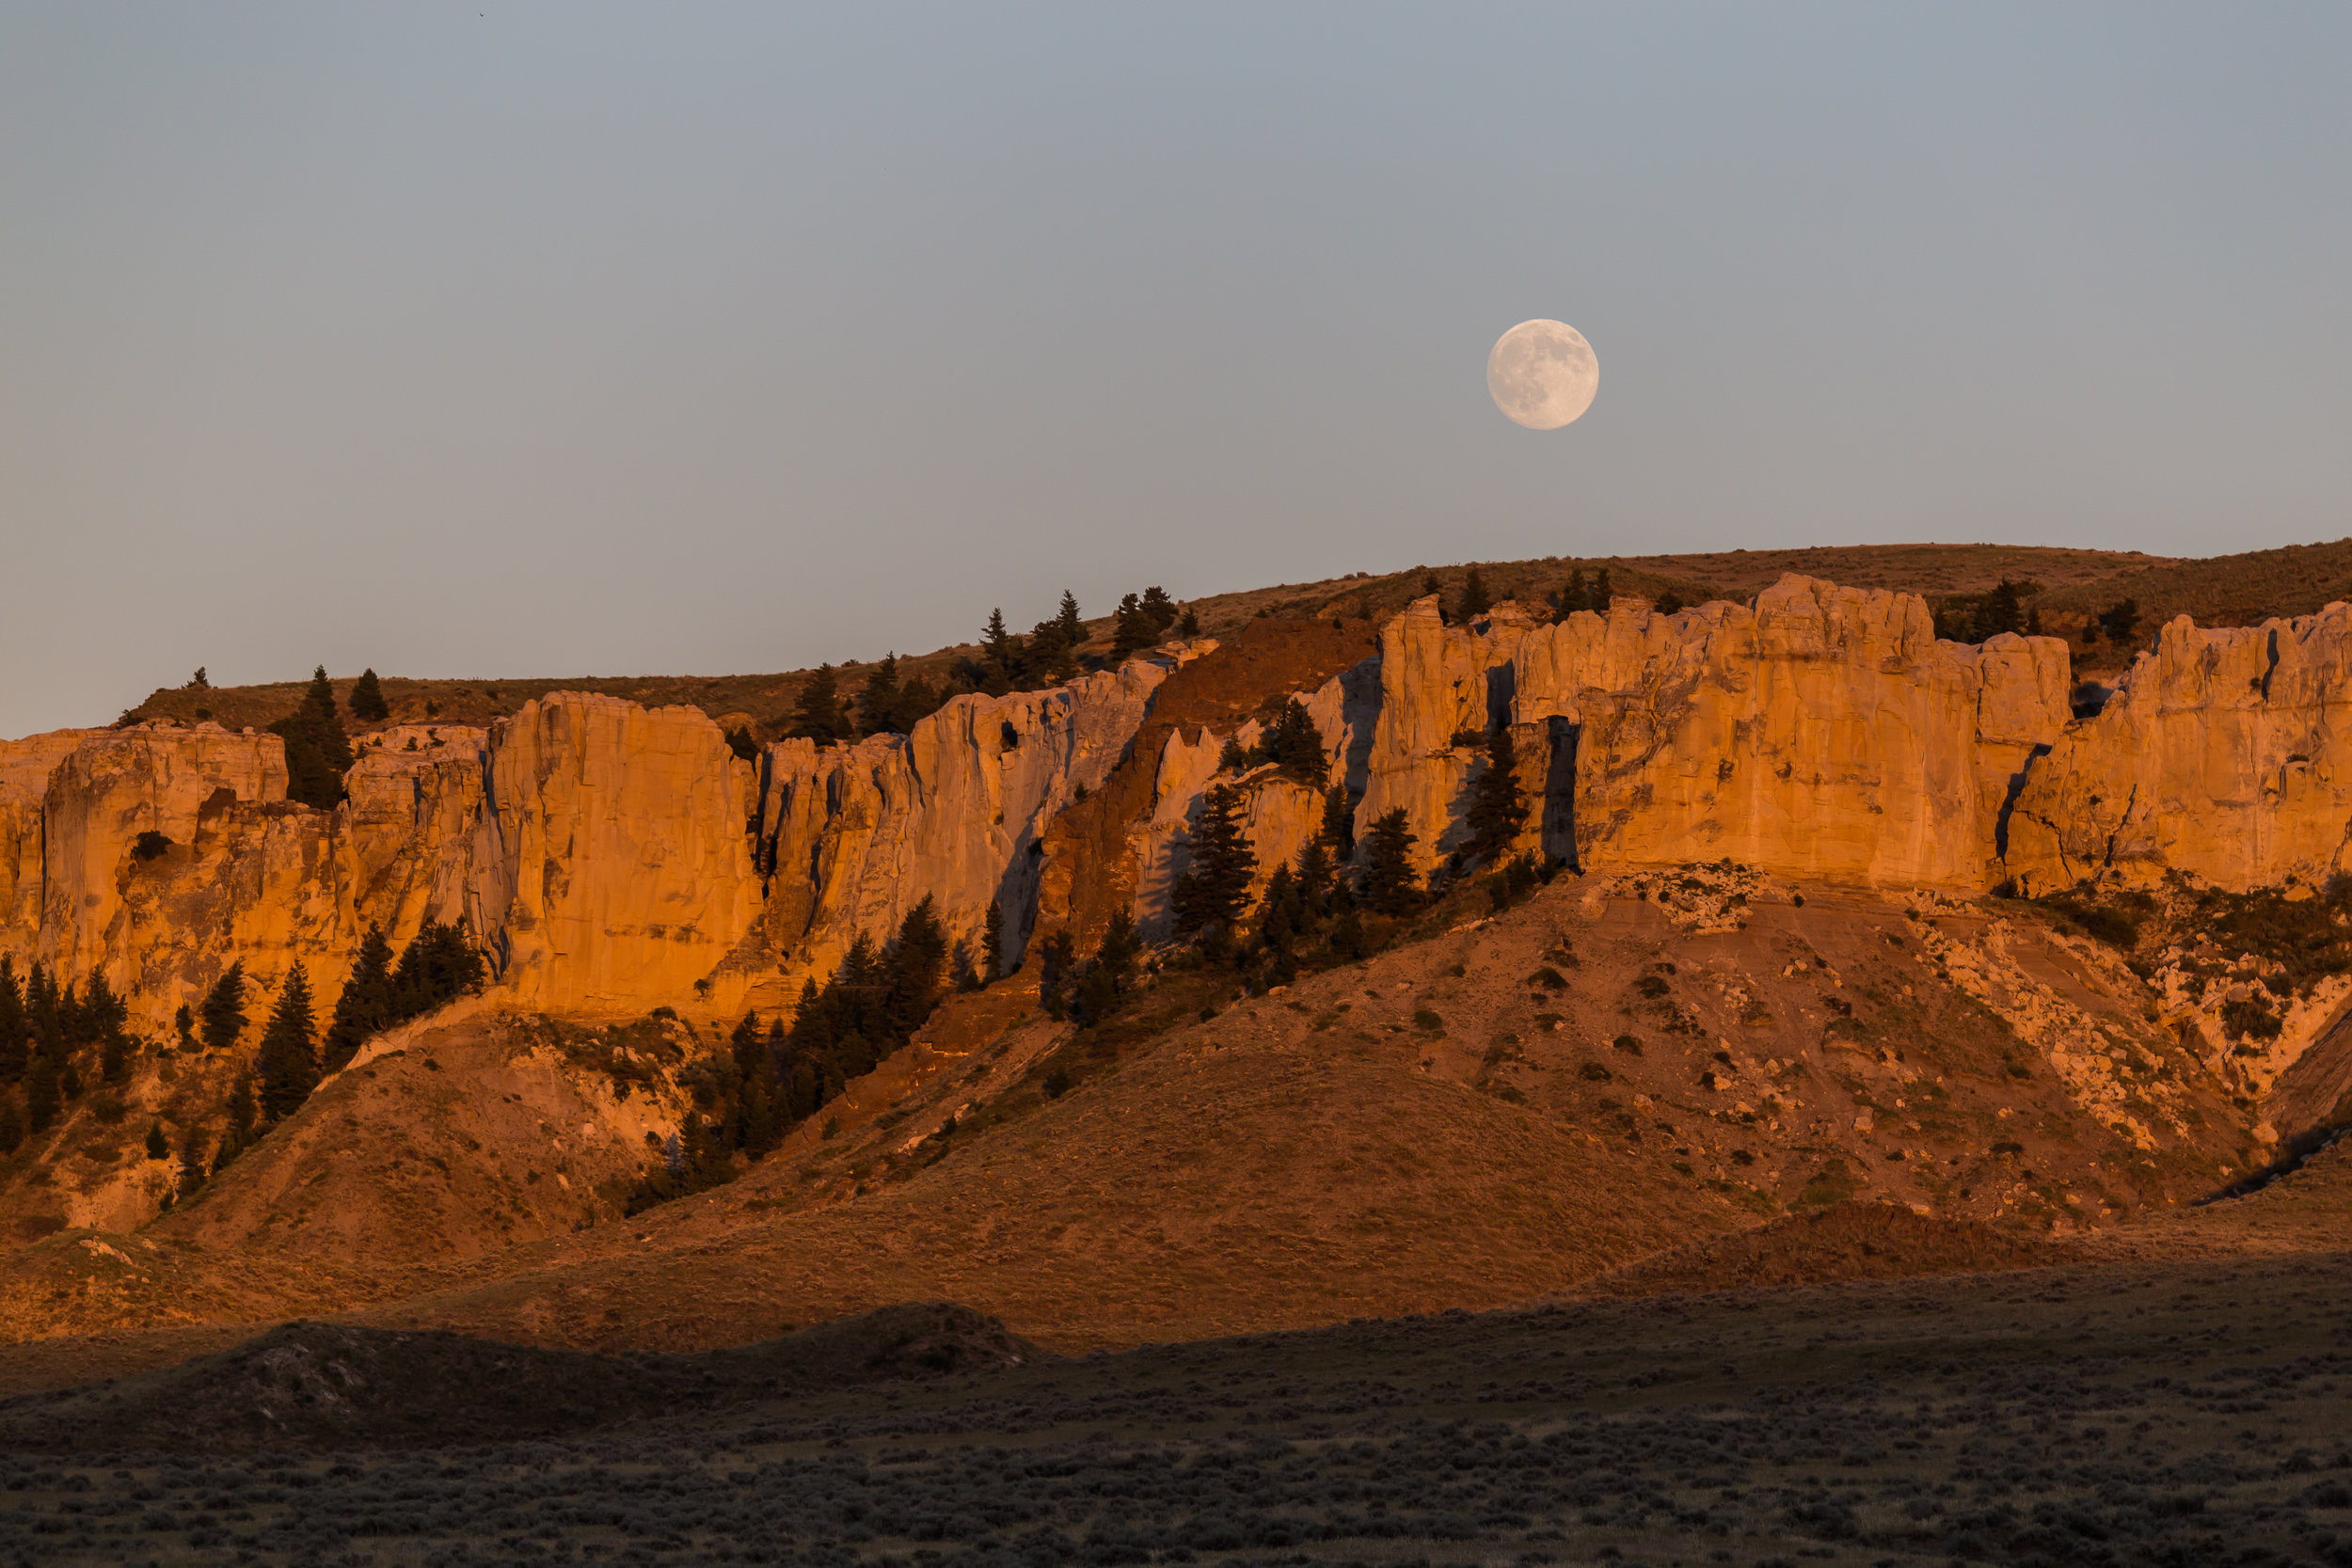 Sunset and Moonset at Hole-in-the-Wall